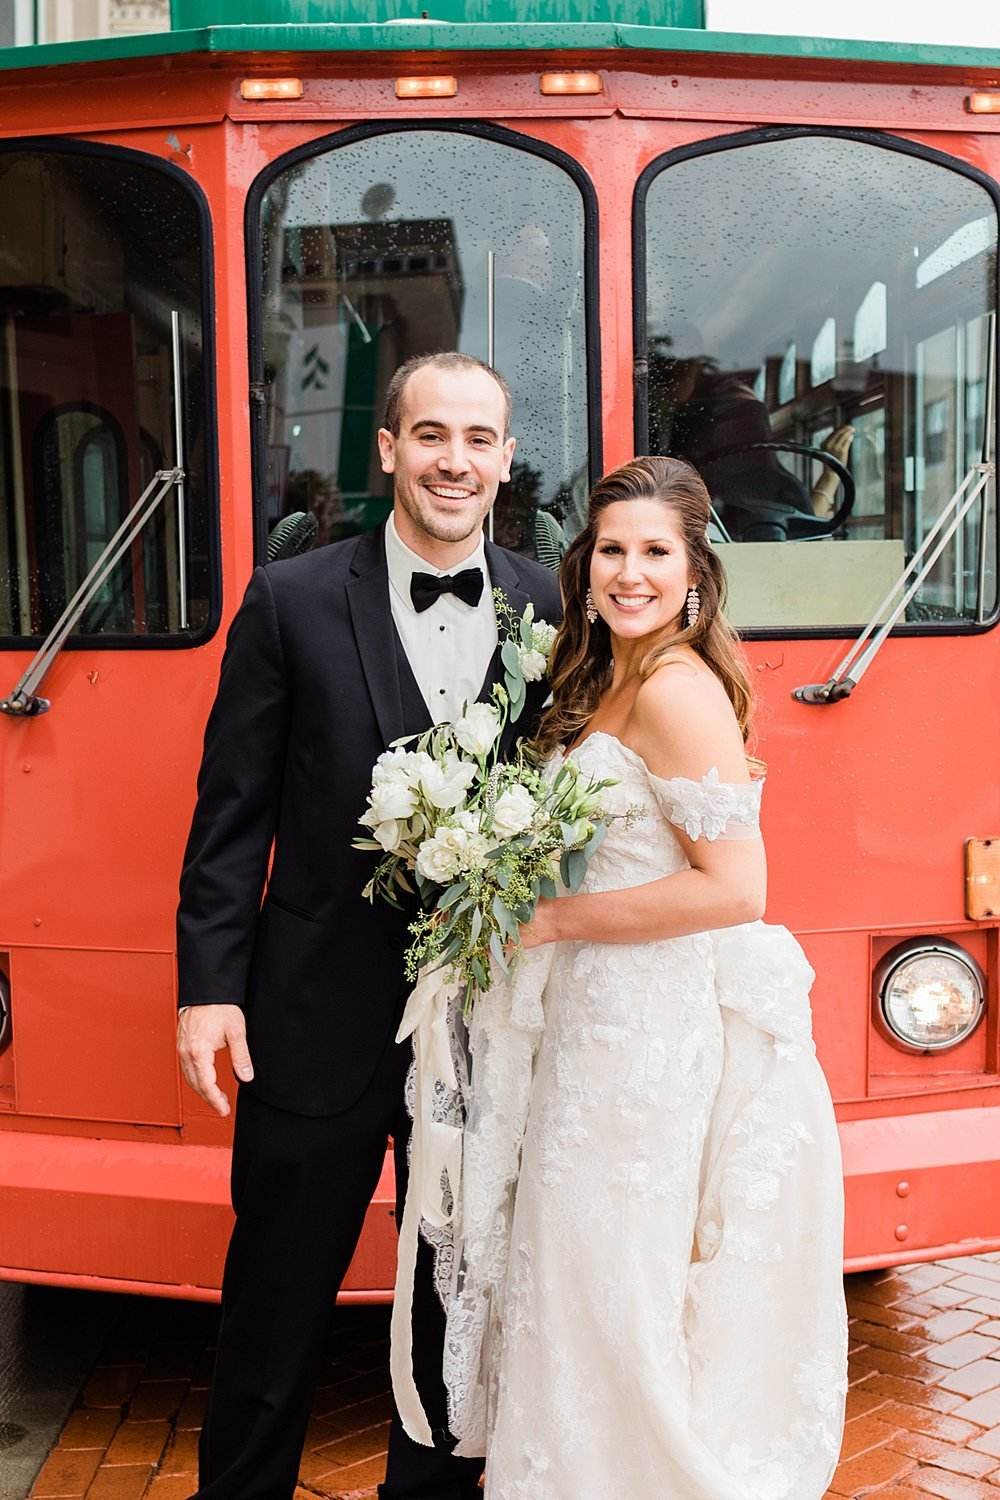 30_Downtown-Wausau-Wedding-Photos-James-Stokes-Photography